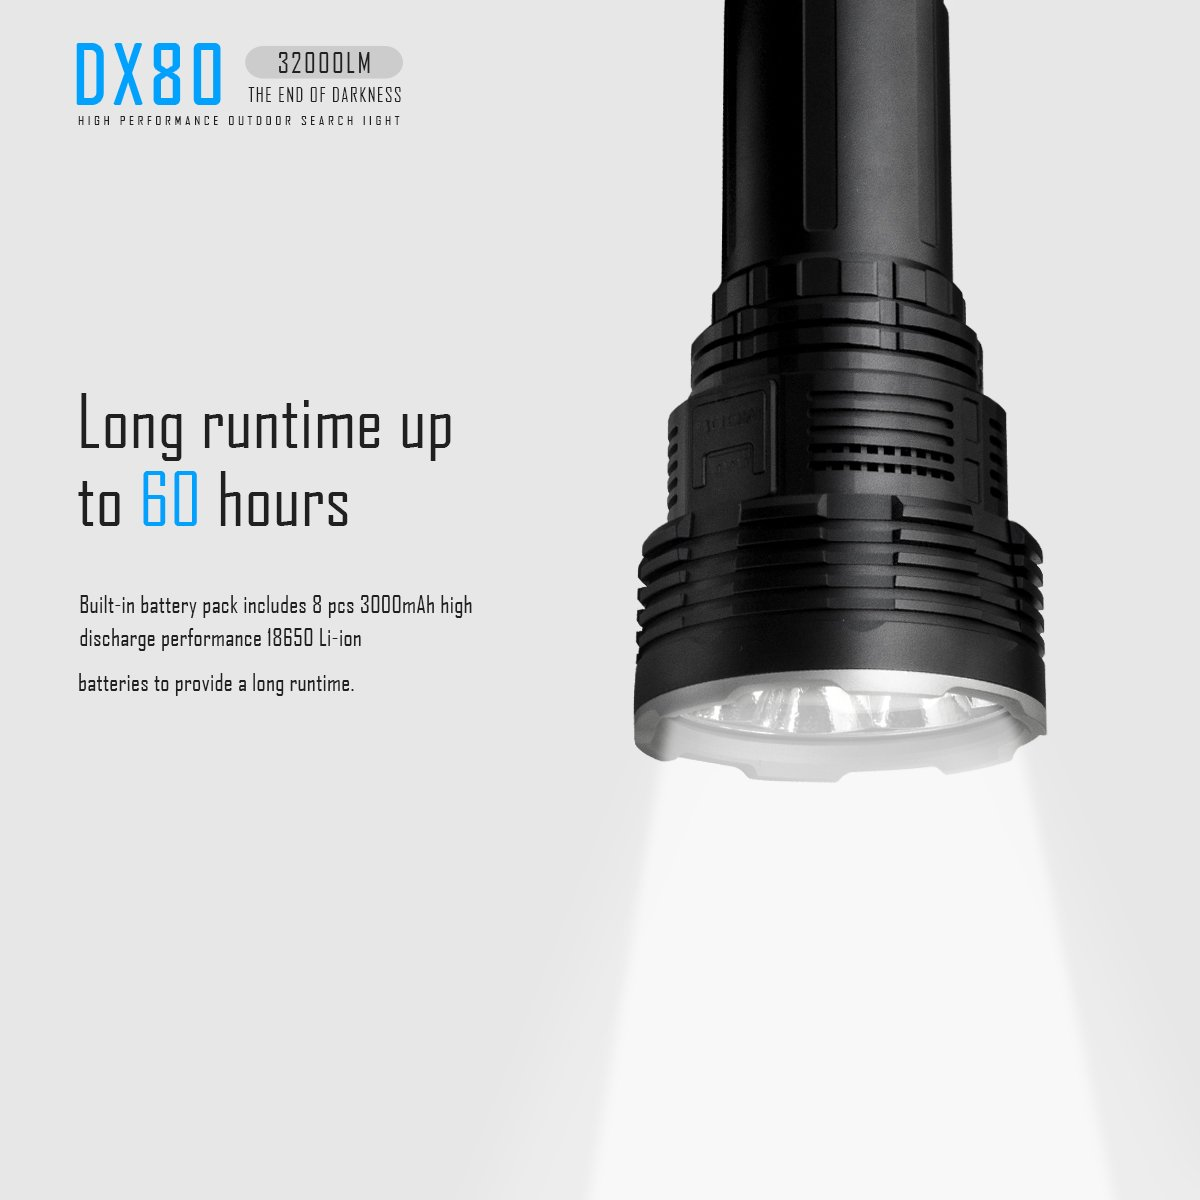 IMALENT DX80 8PCS Cree XHP70 32000lm The Most Powerful LED Flashlight,Hand-held,To Use For Emergency, Travel, Home Lighting, Late Night Out, Flood Lighting, To Meet A Variety Of Lighting Needs by IMALENT (Image #6)